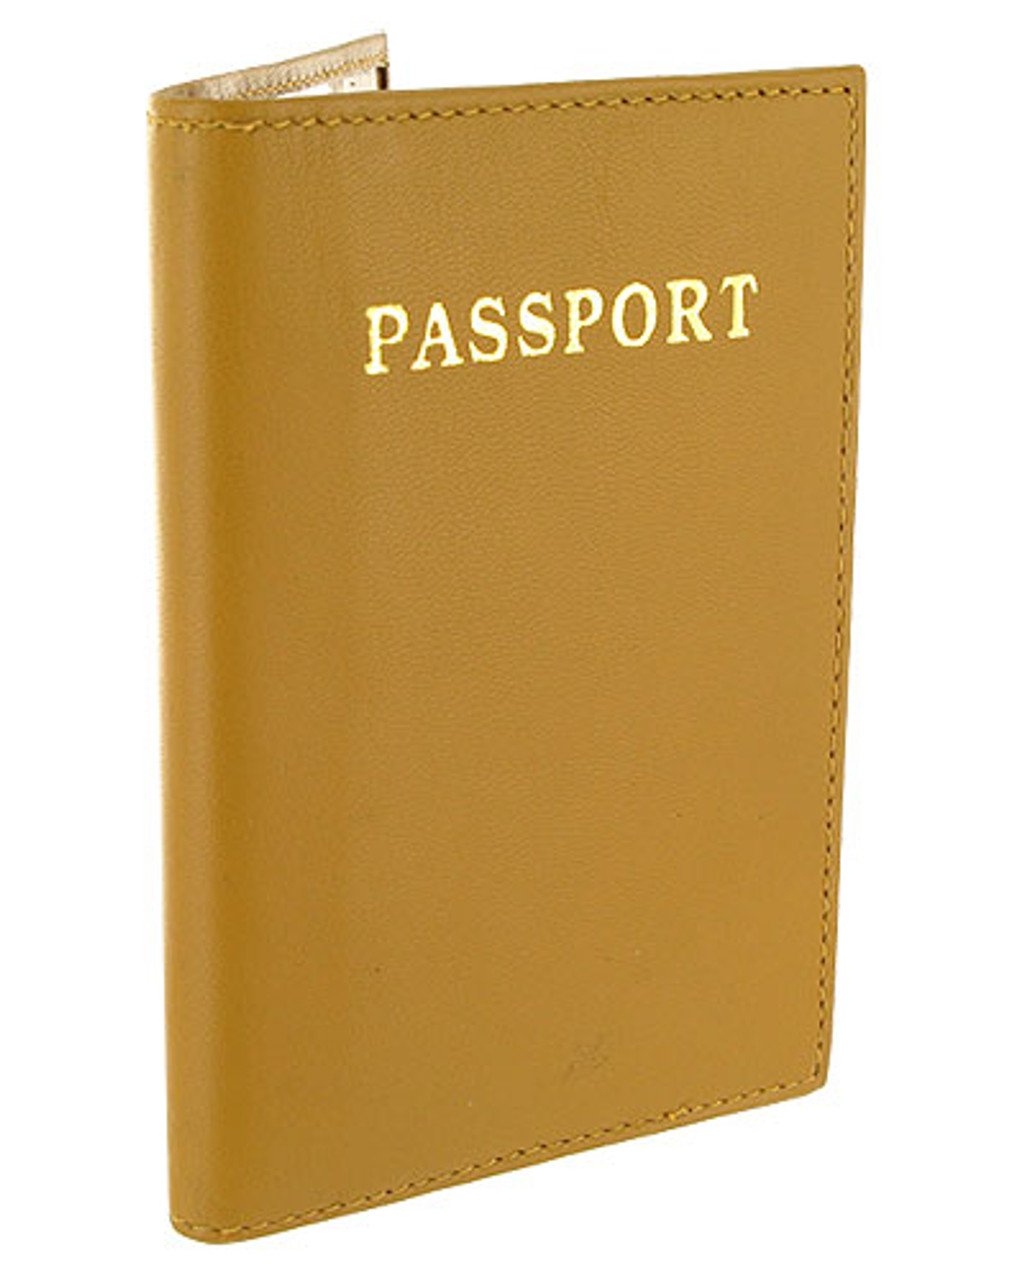 Tan Leather Cover Passport Holder Travel 5.5 x 3.75 inch Wallet